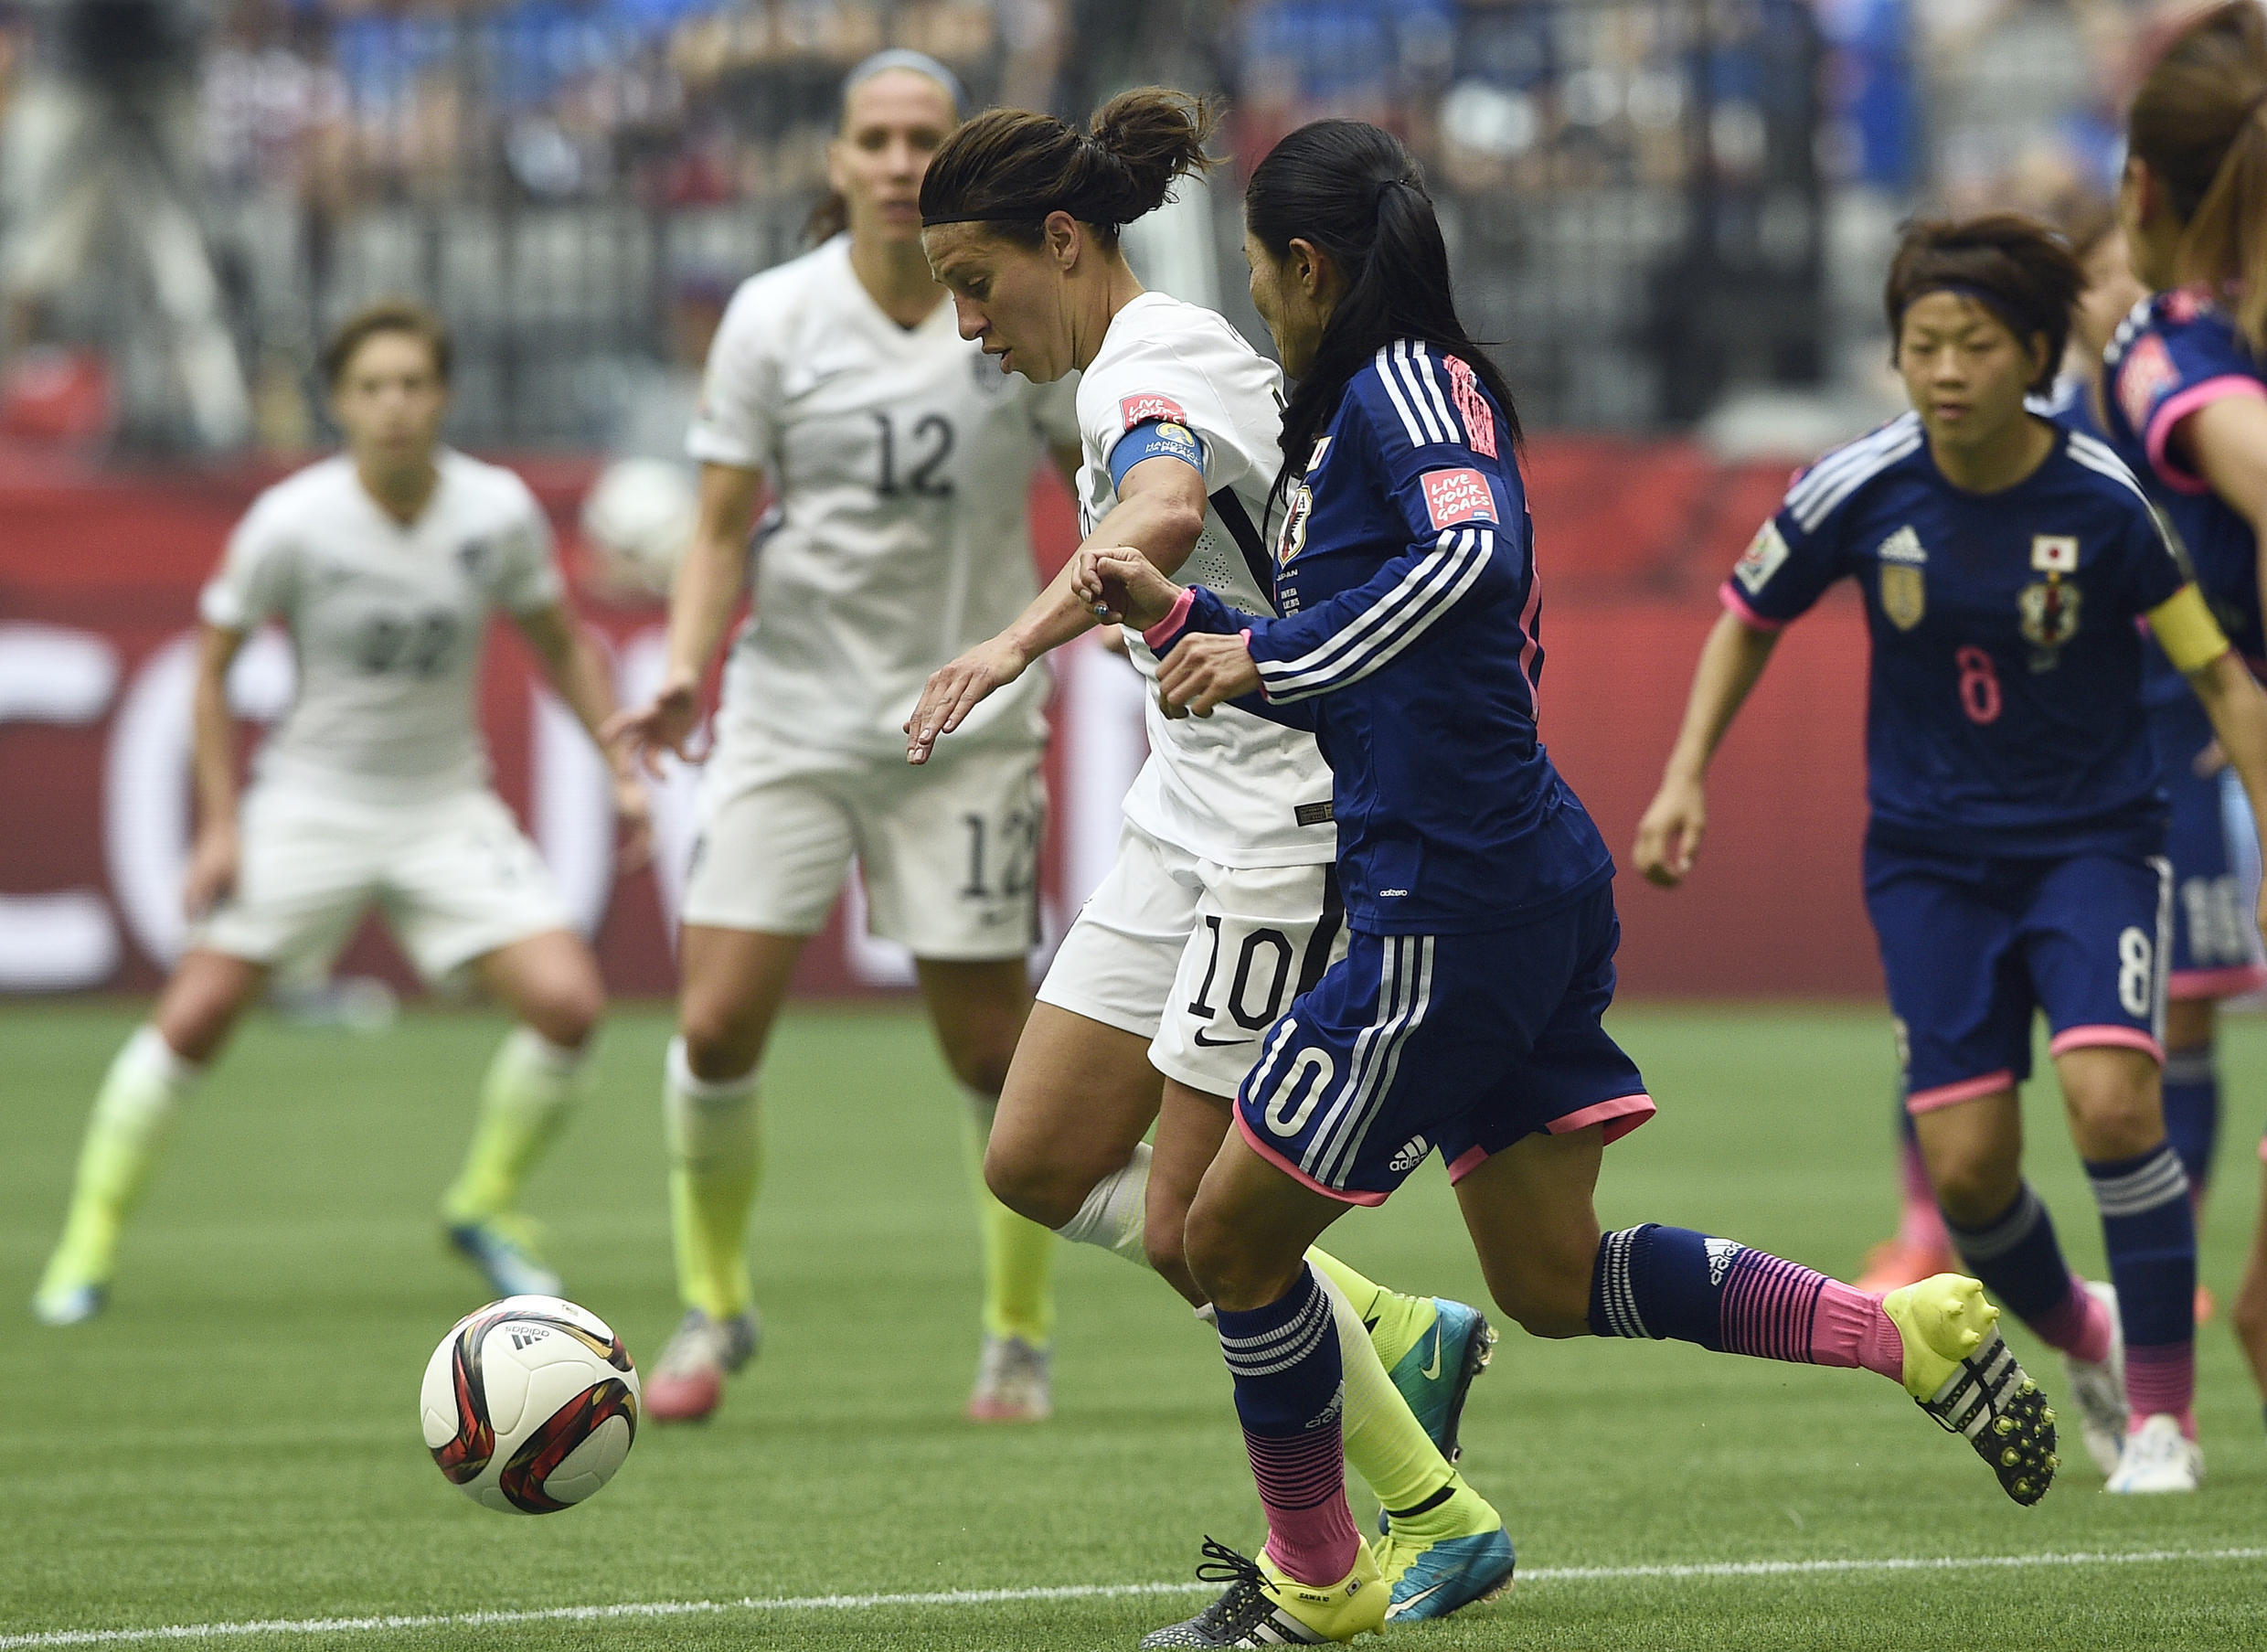 Japan's midfielder Homare Sawa (R) vies with USA midfielder Carli Lloyd during the final football match between USA and Japan during their 2015 FIFA Women's World Cup at the BC Place Stadium in Vancouver on July 5, 2015.